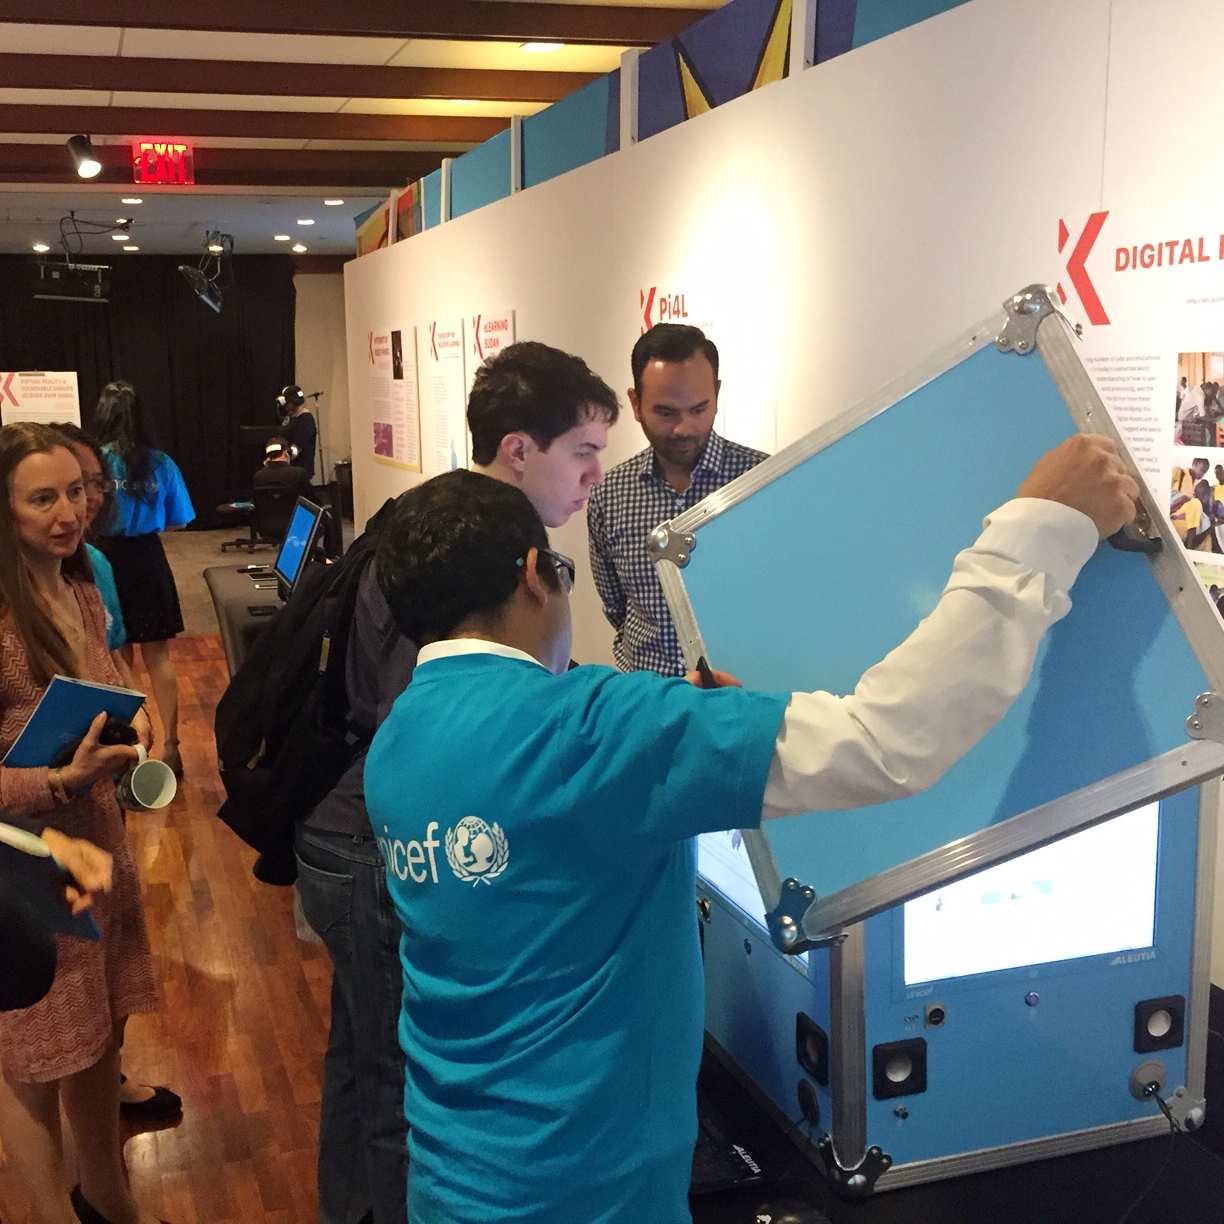 unicef's unicube, internet cafes in a box (no installation required)